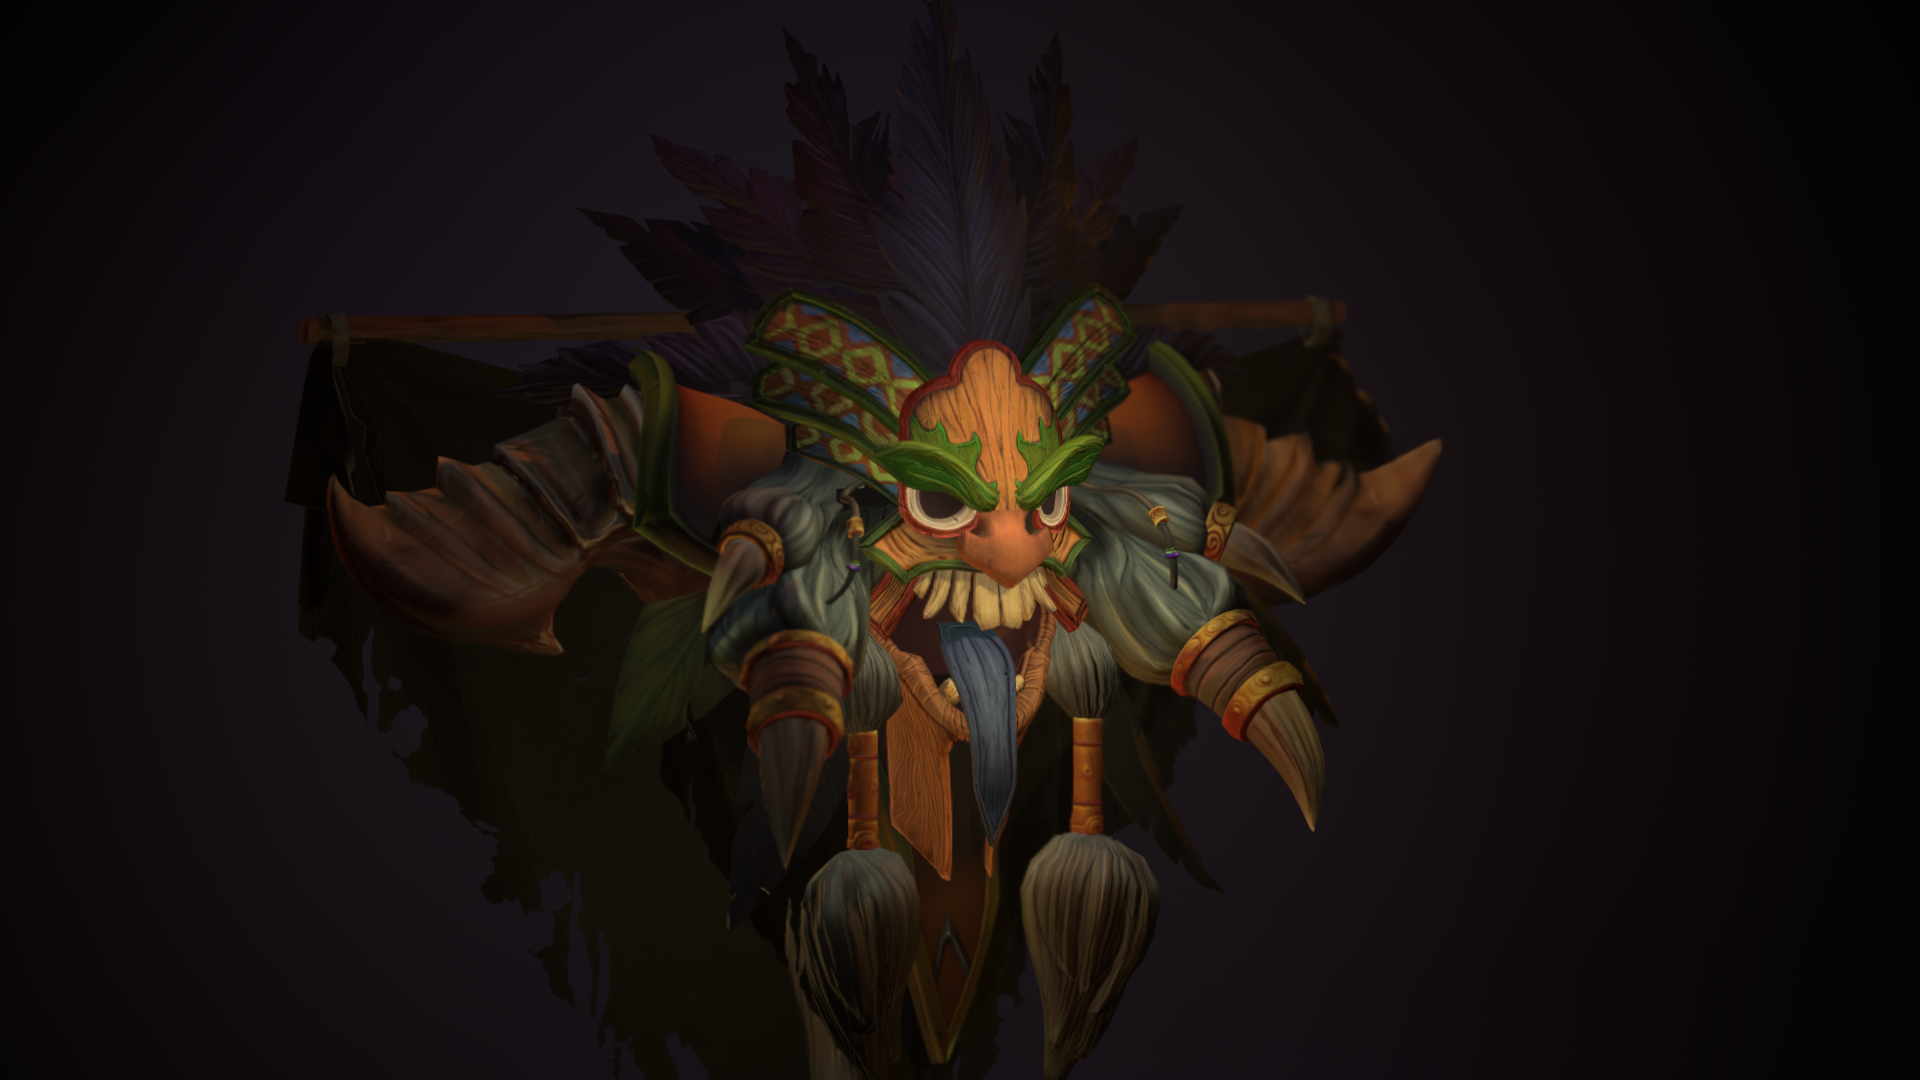 witch doctor crest 3d render